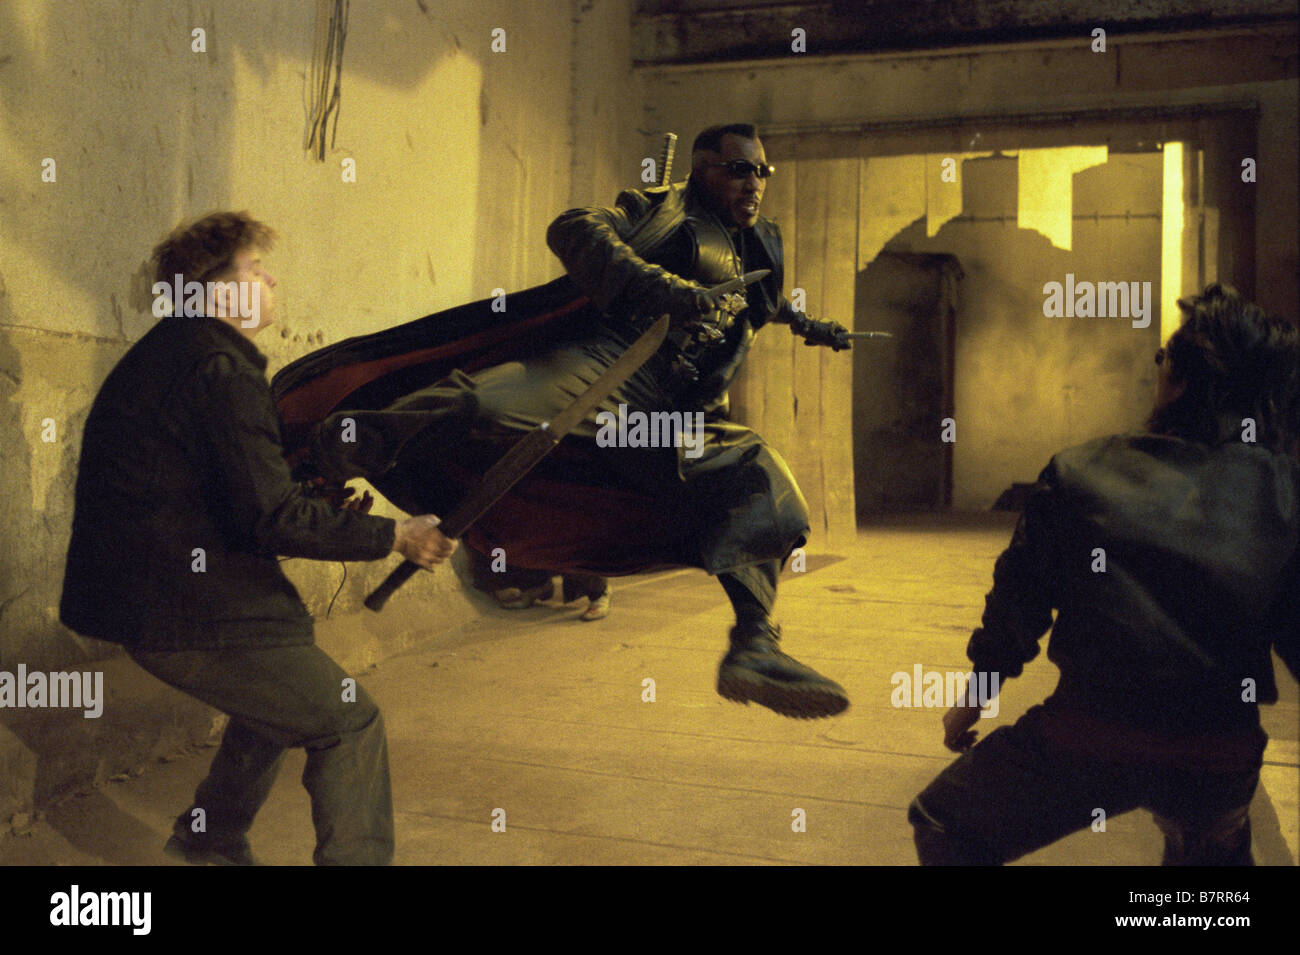 Blade II  Year: 2002 USA Wesley Snipes  Director: Guillermo del Toro - Stock Image